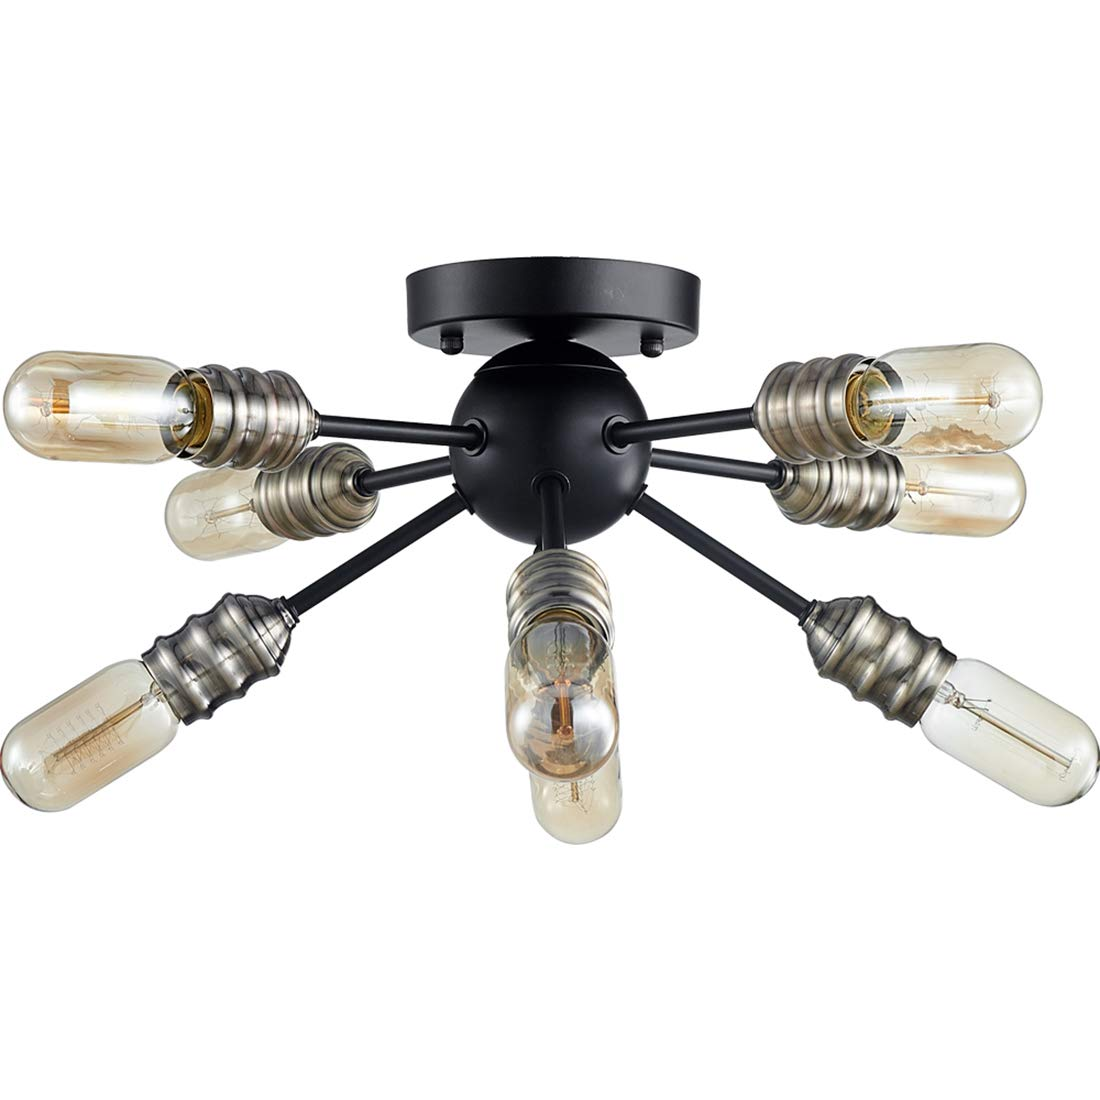 TZOE 8-Light Sputnik Chandelier Mid Century Modern Ceiling Light Bronze and Black Rustic Living Room Lighting Bedroom Light Dining Room Lights UL Listed